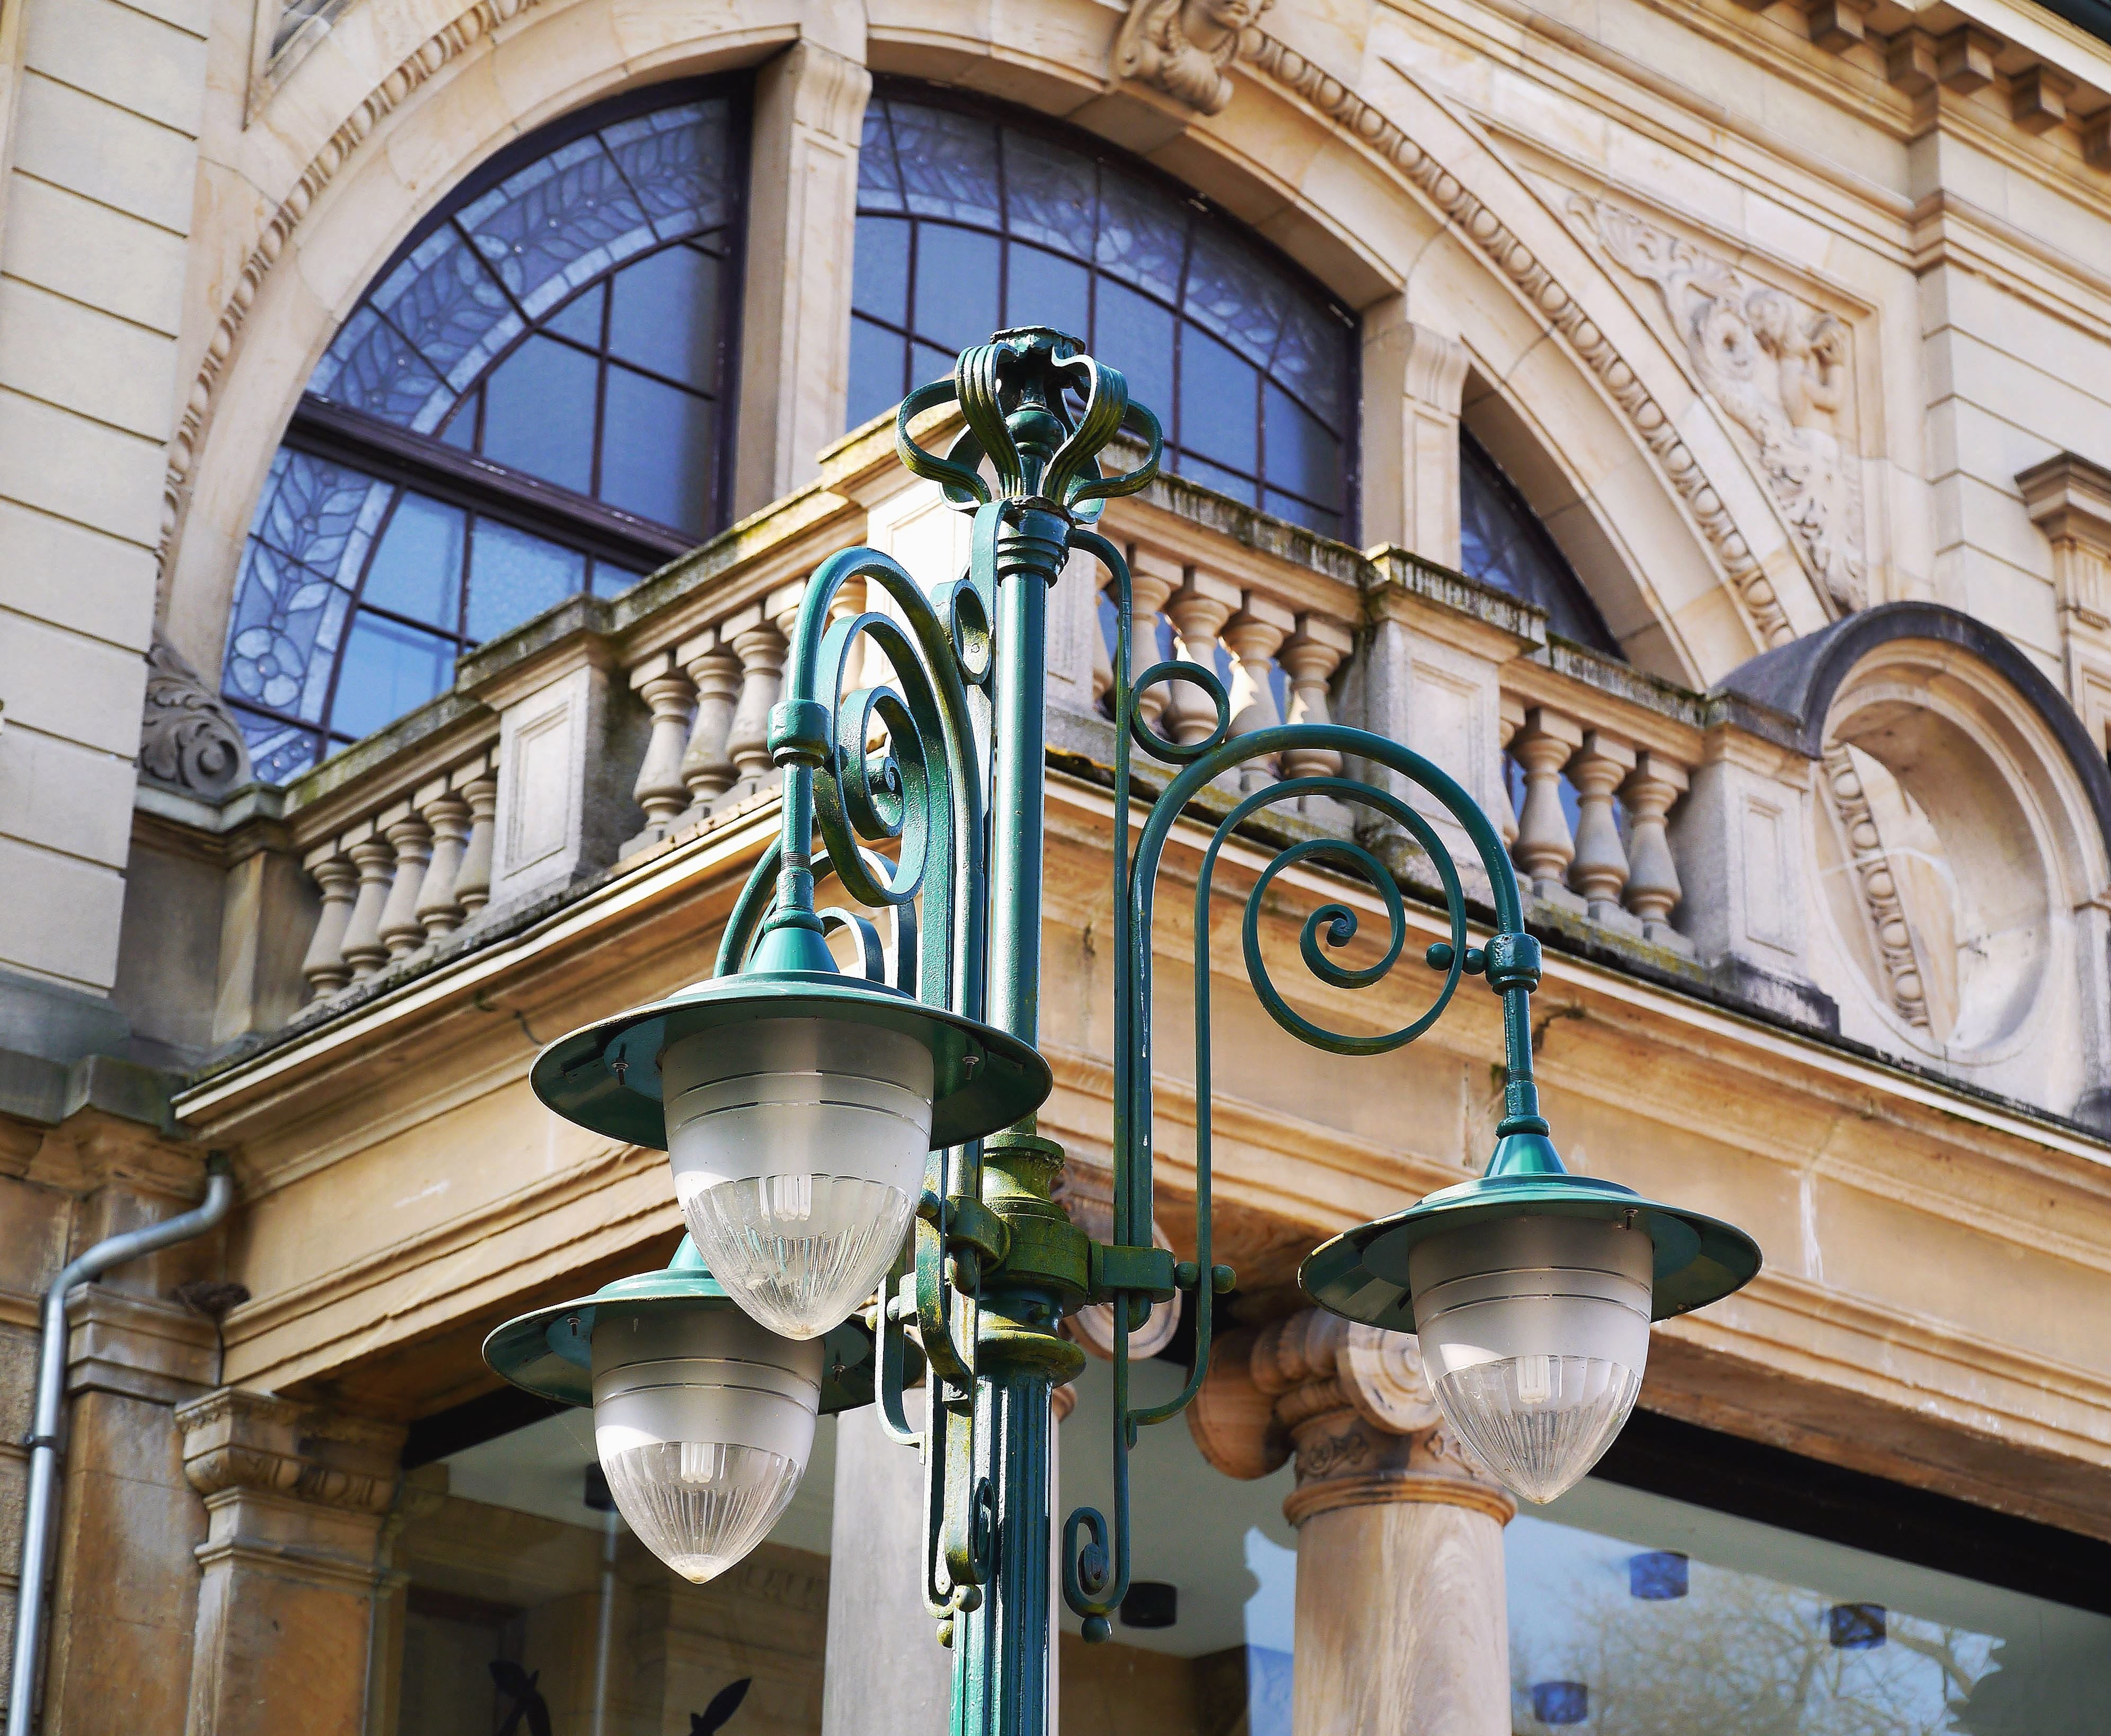 Image libre lampadaire fa ade architecture cl ture for Lampadaire exterieur rue